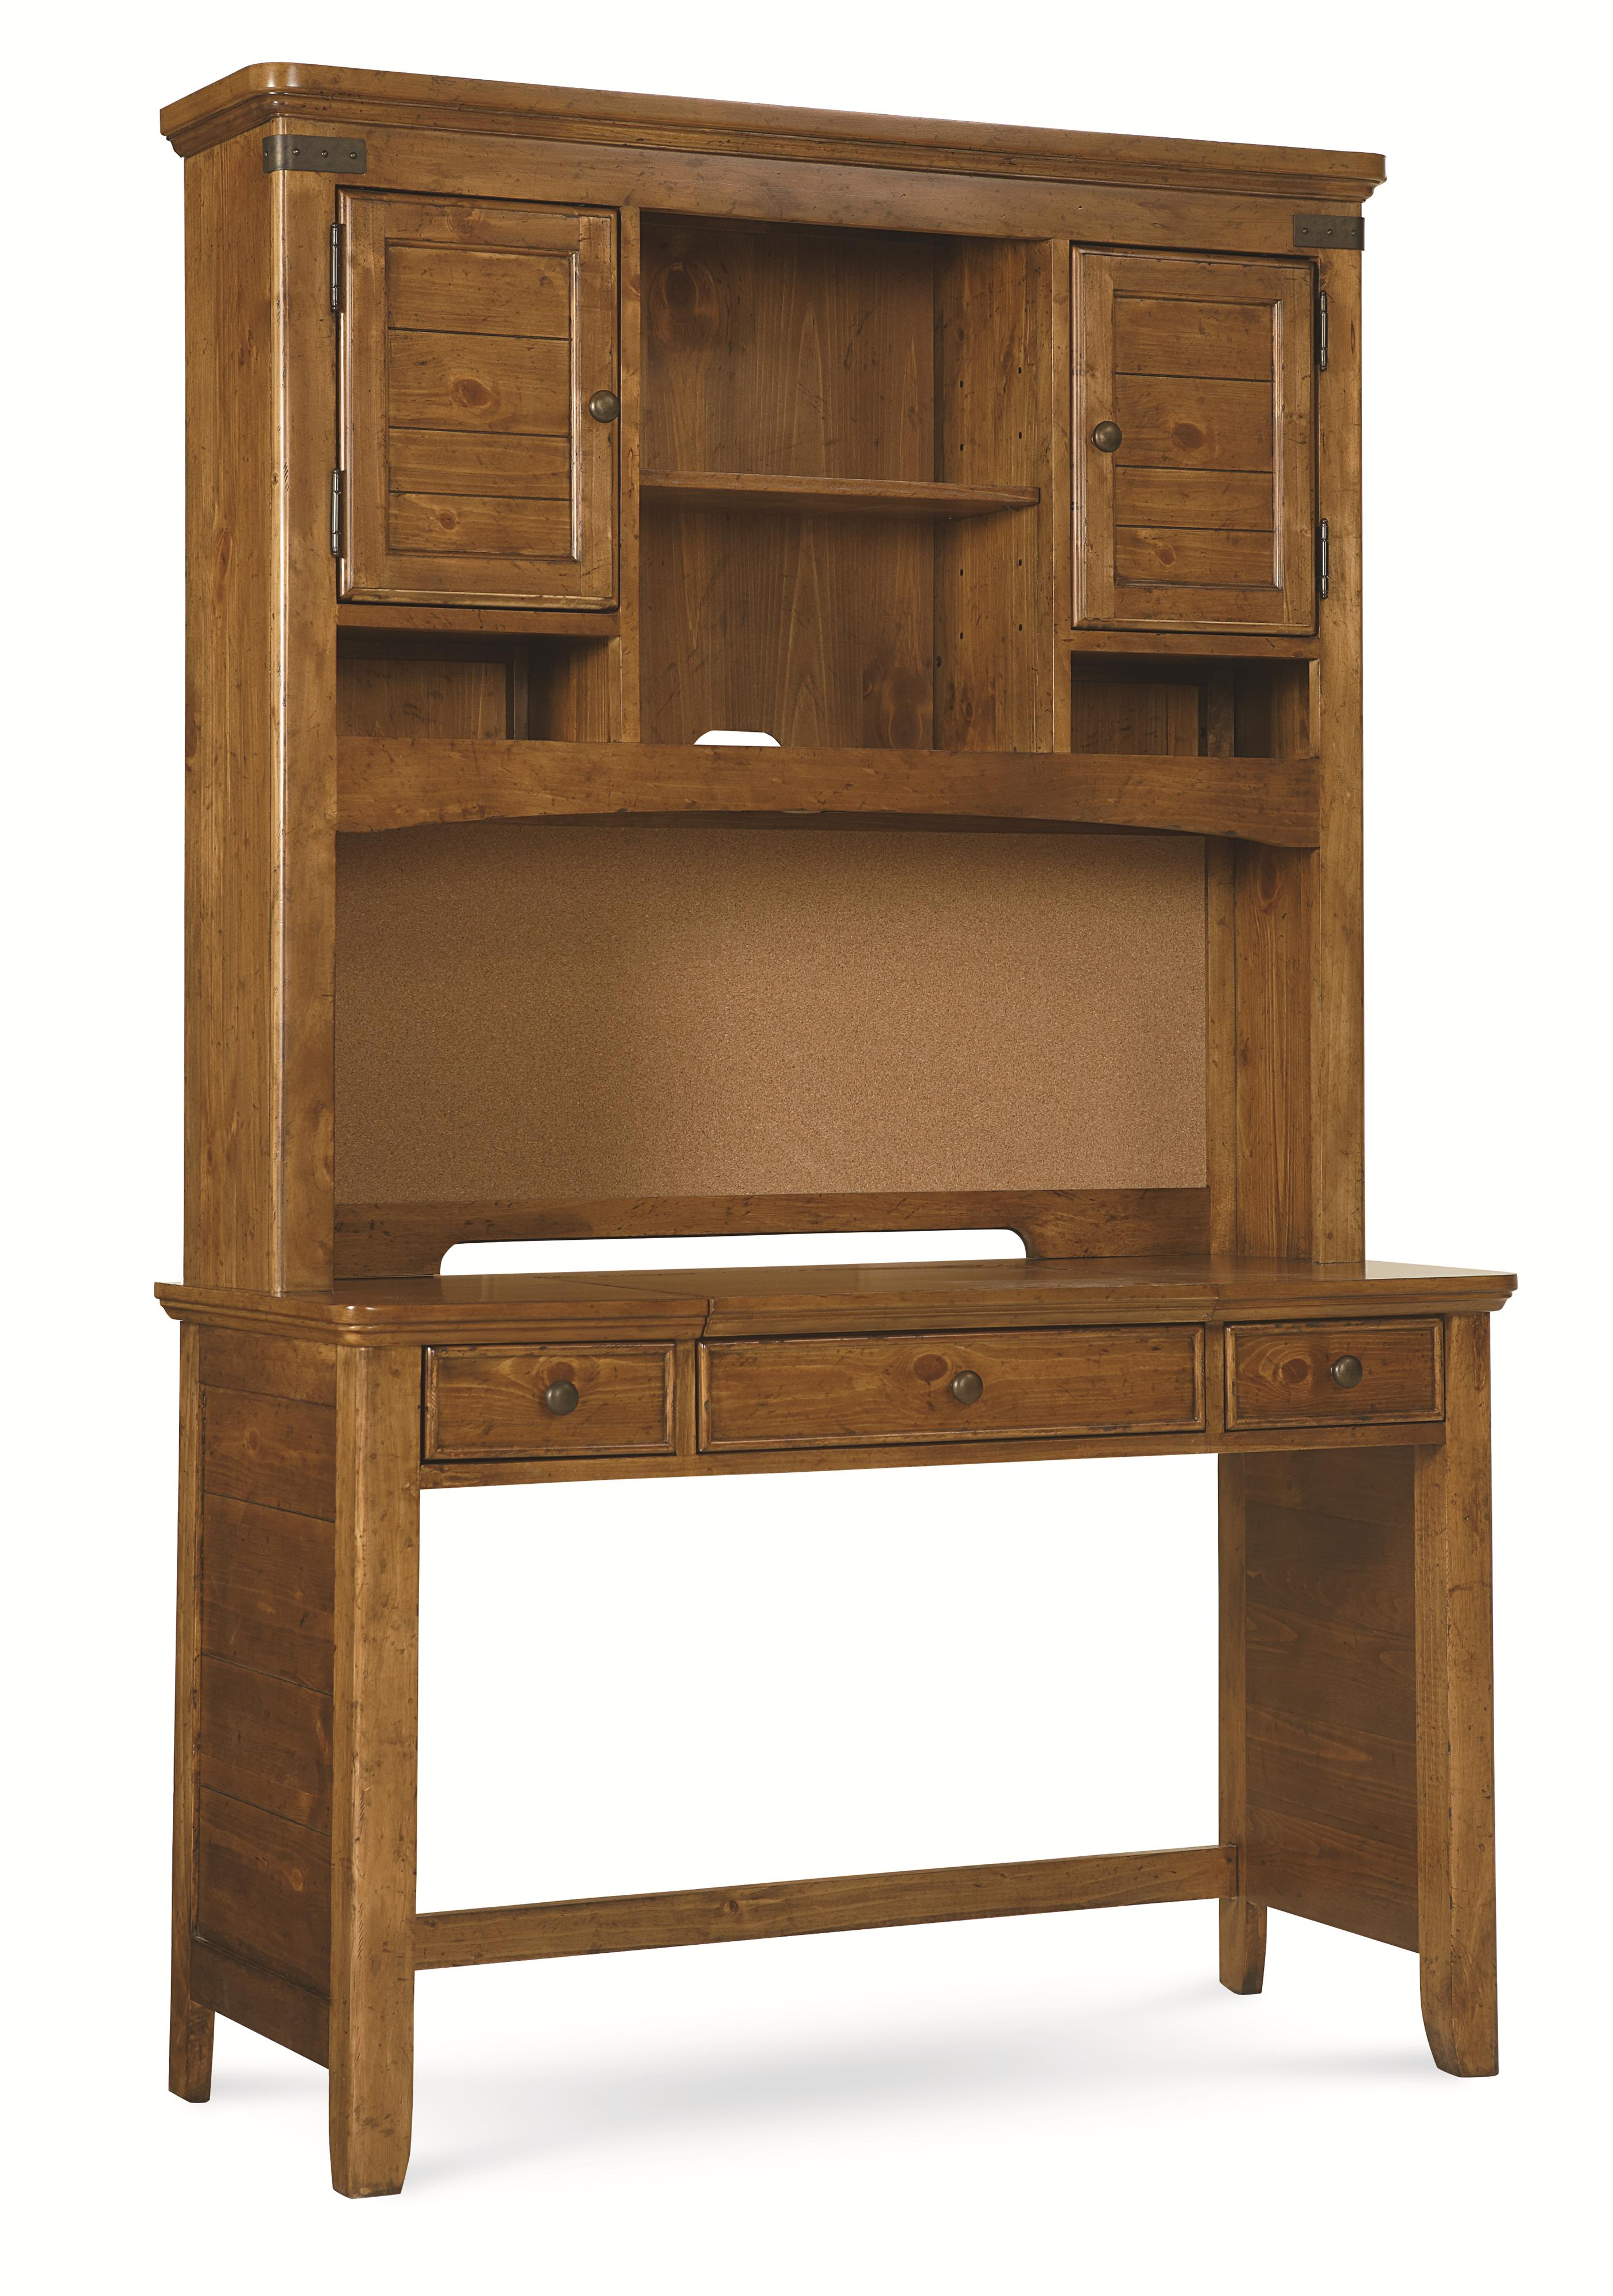 Legacy Classic Kids Bryce Canyon Desk and Hutch - Item Number: 3900-6100+6200